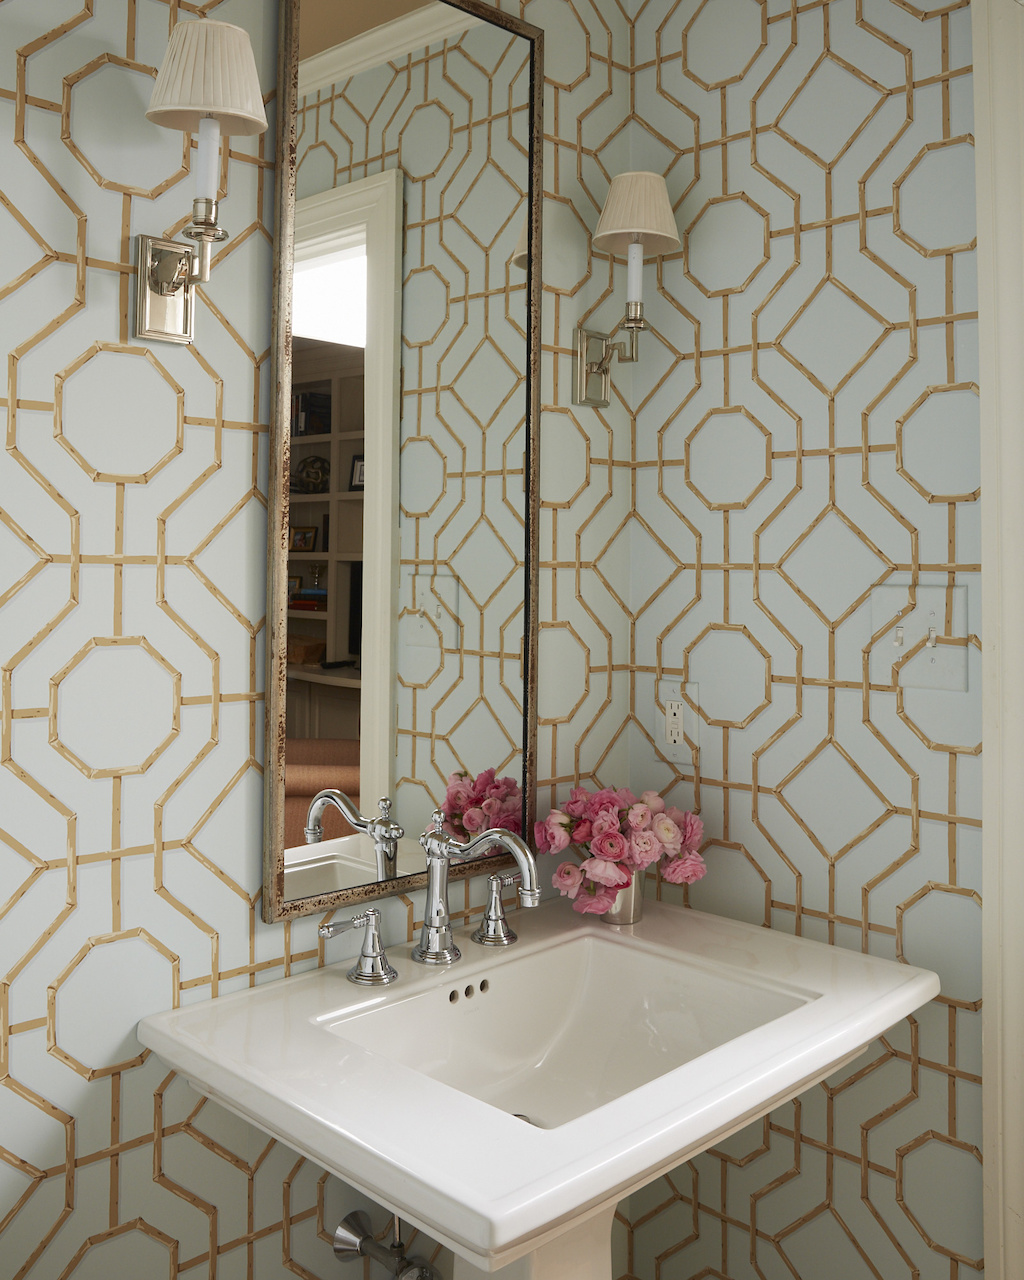 Cowtan & Tout's trellis wallpaper adds dimension and architectural interest to the powder room.